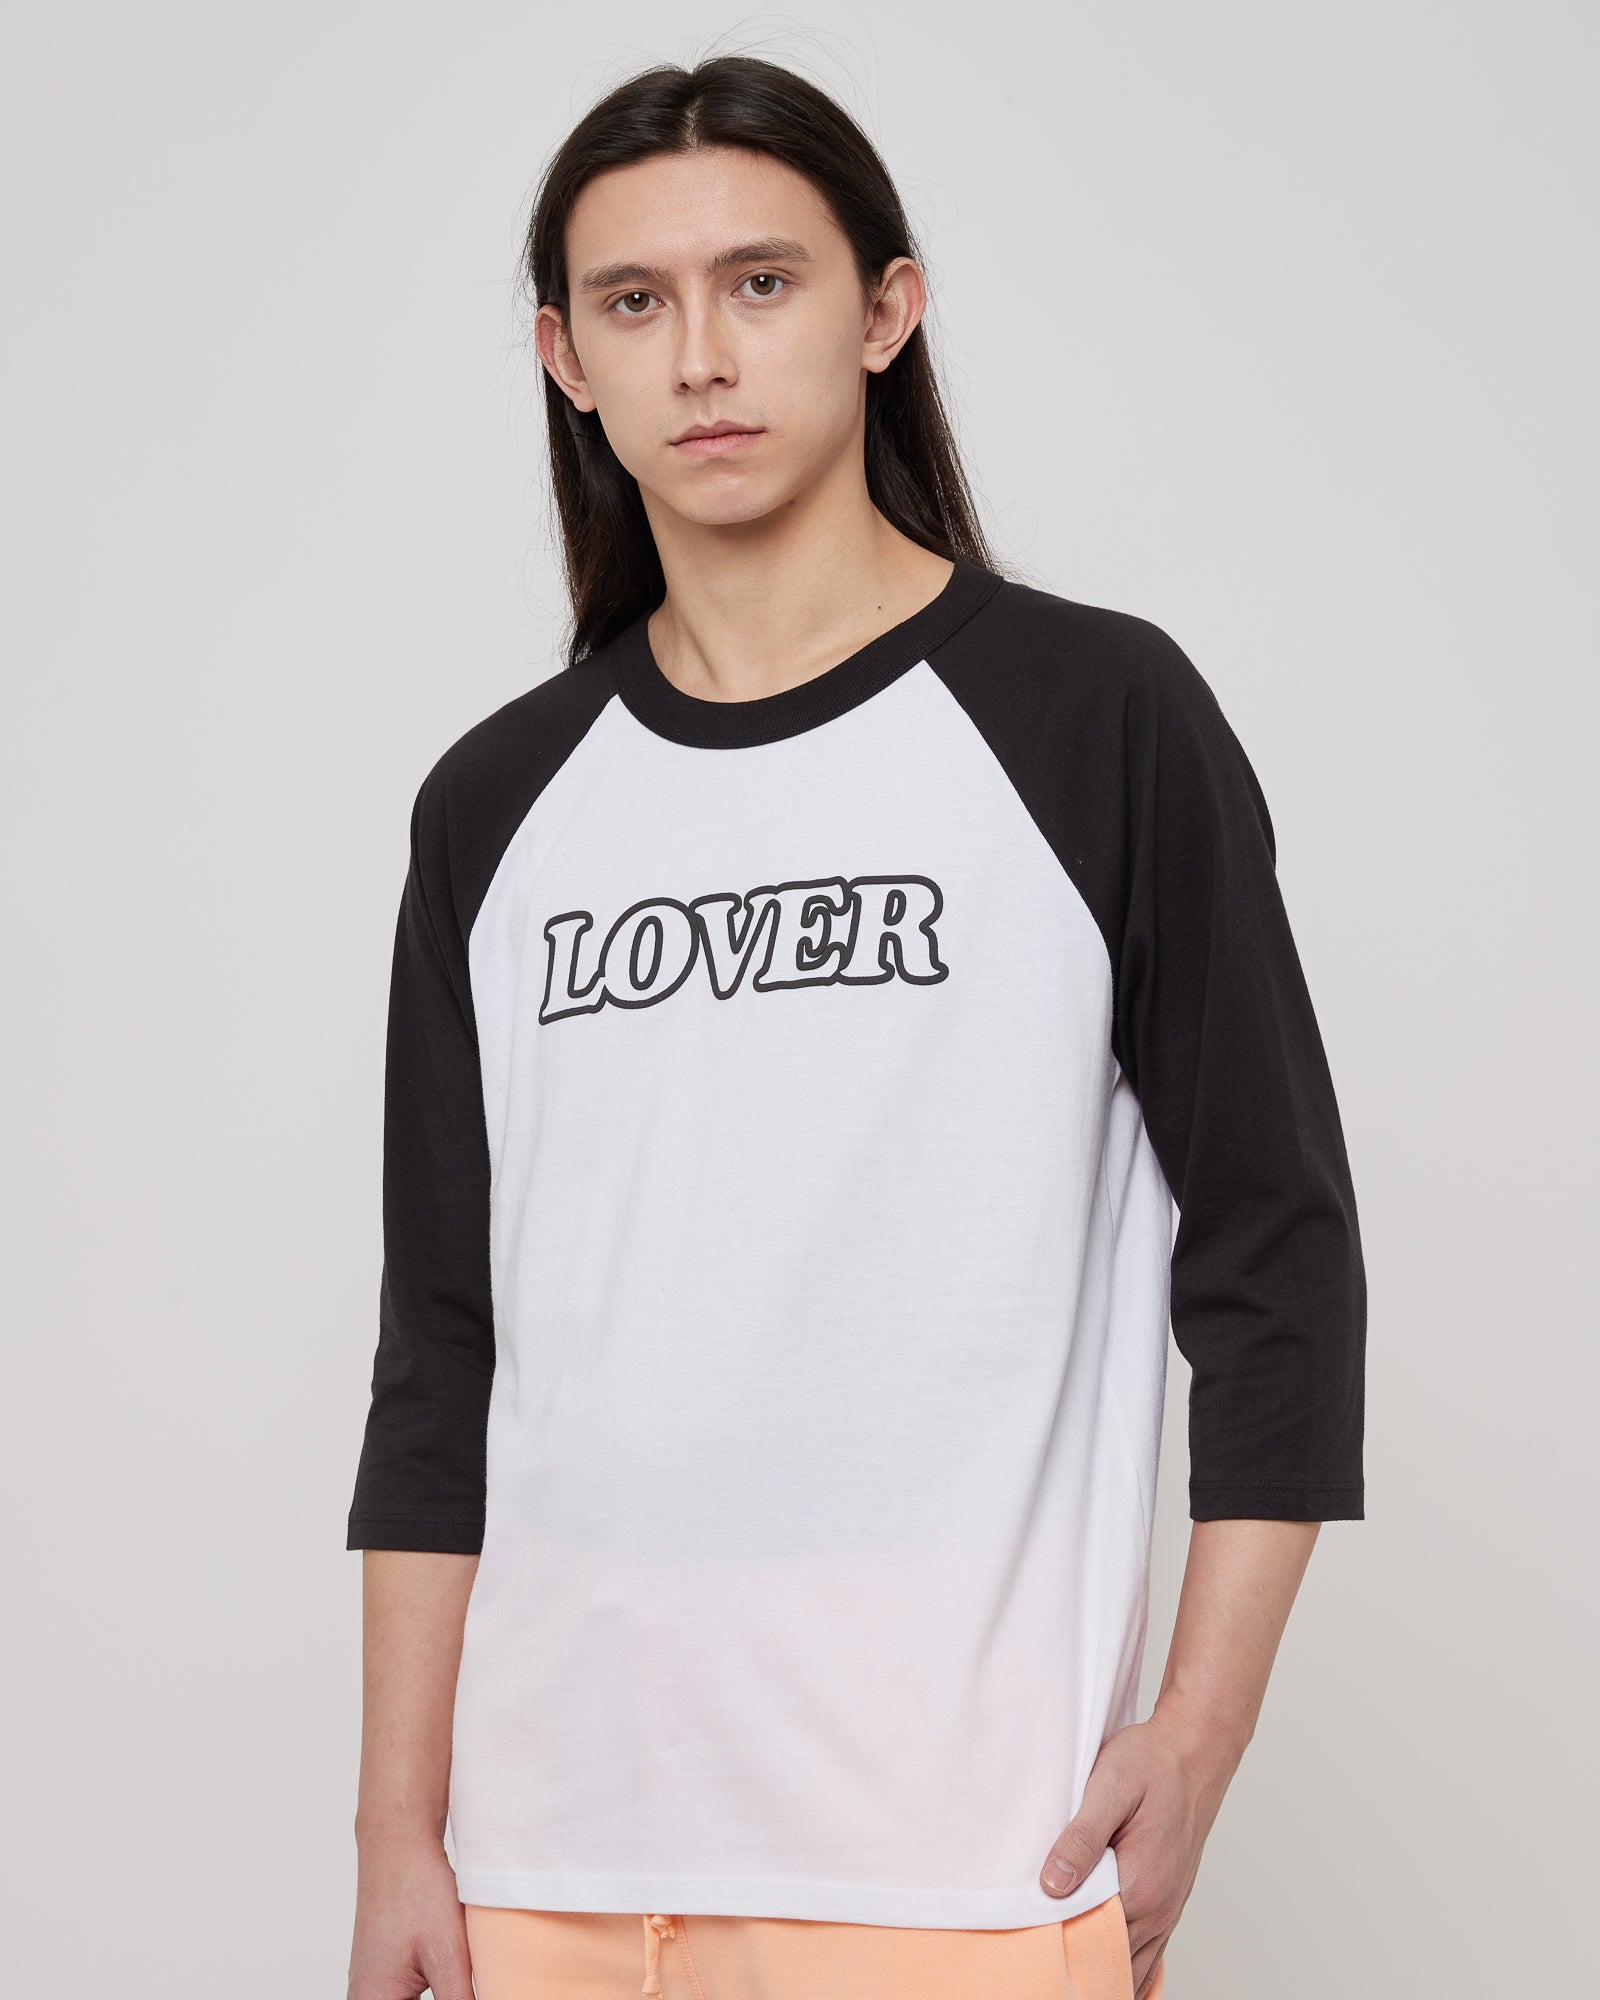 Lover 3/4 Sleeve Raglan T-Shirt in White & Black